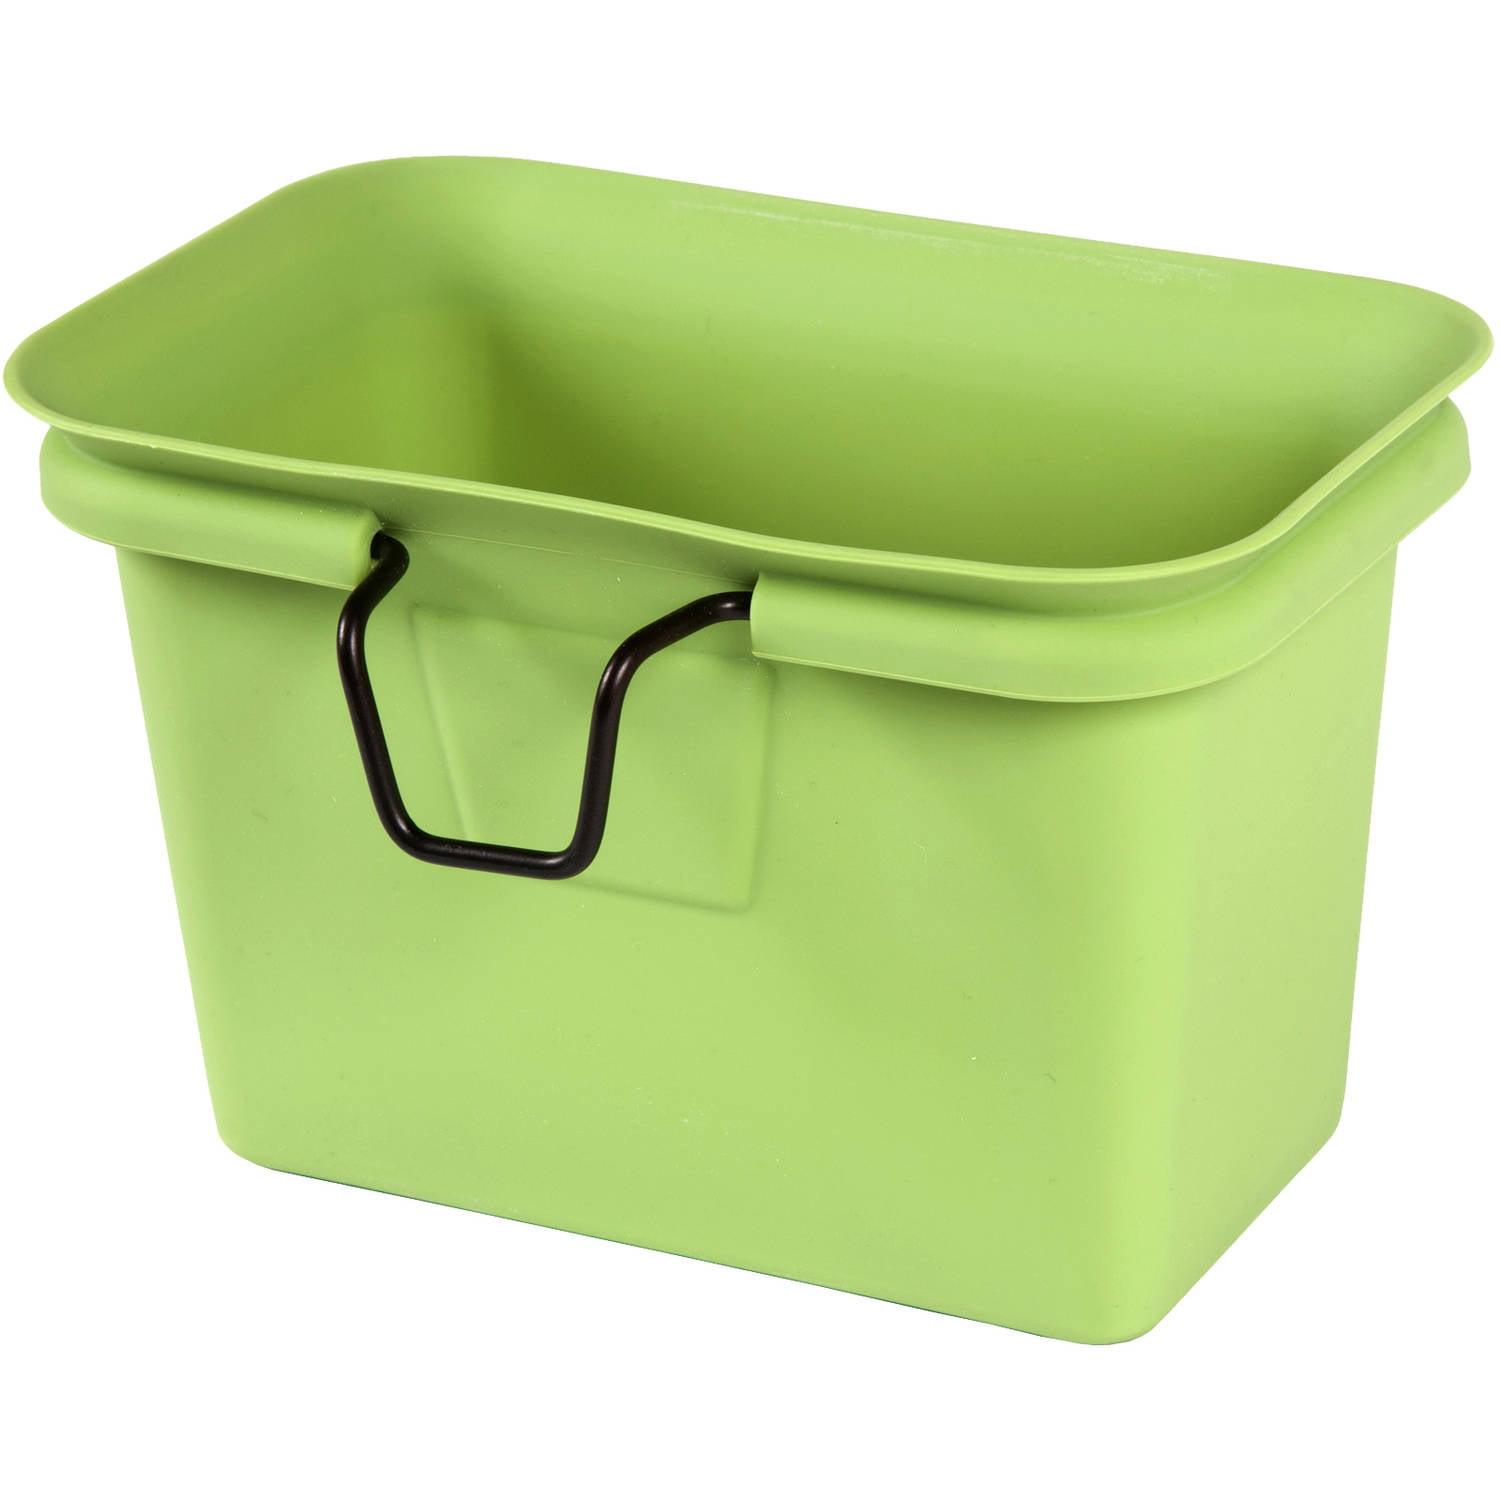 Full Circle Collector & Freezer Compost Bin, FC11302-G, Green by Full Circle